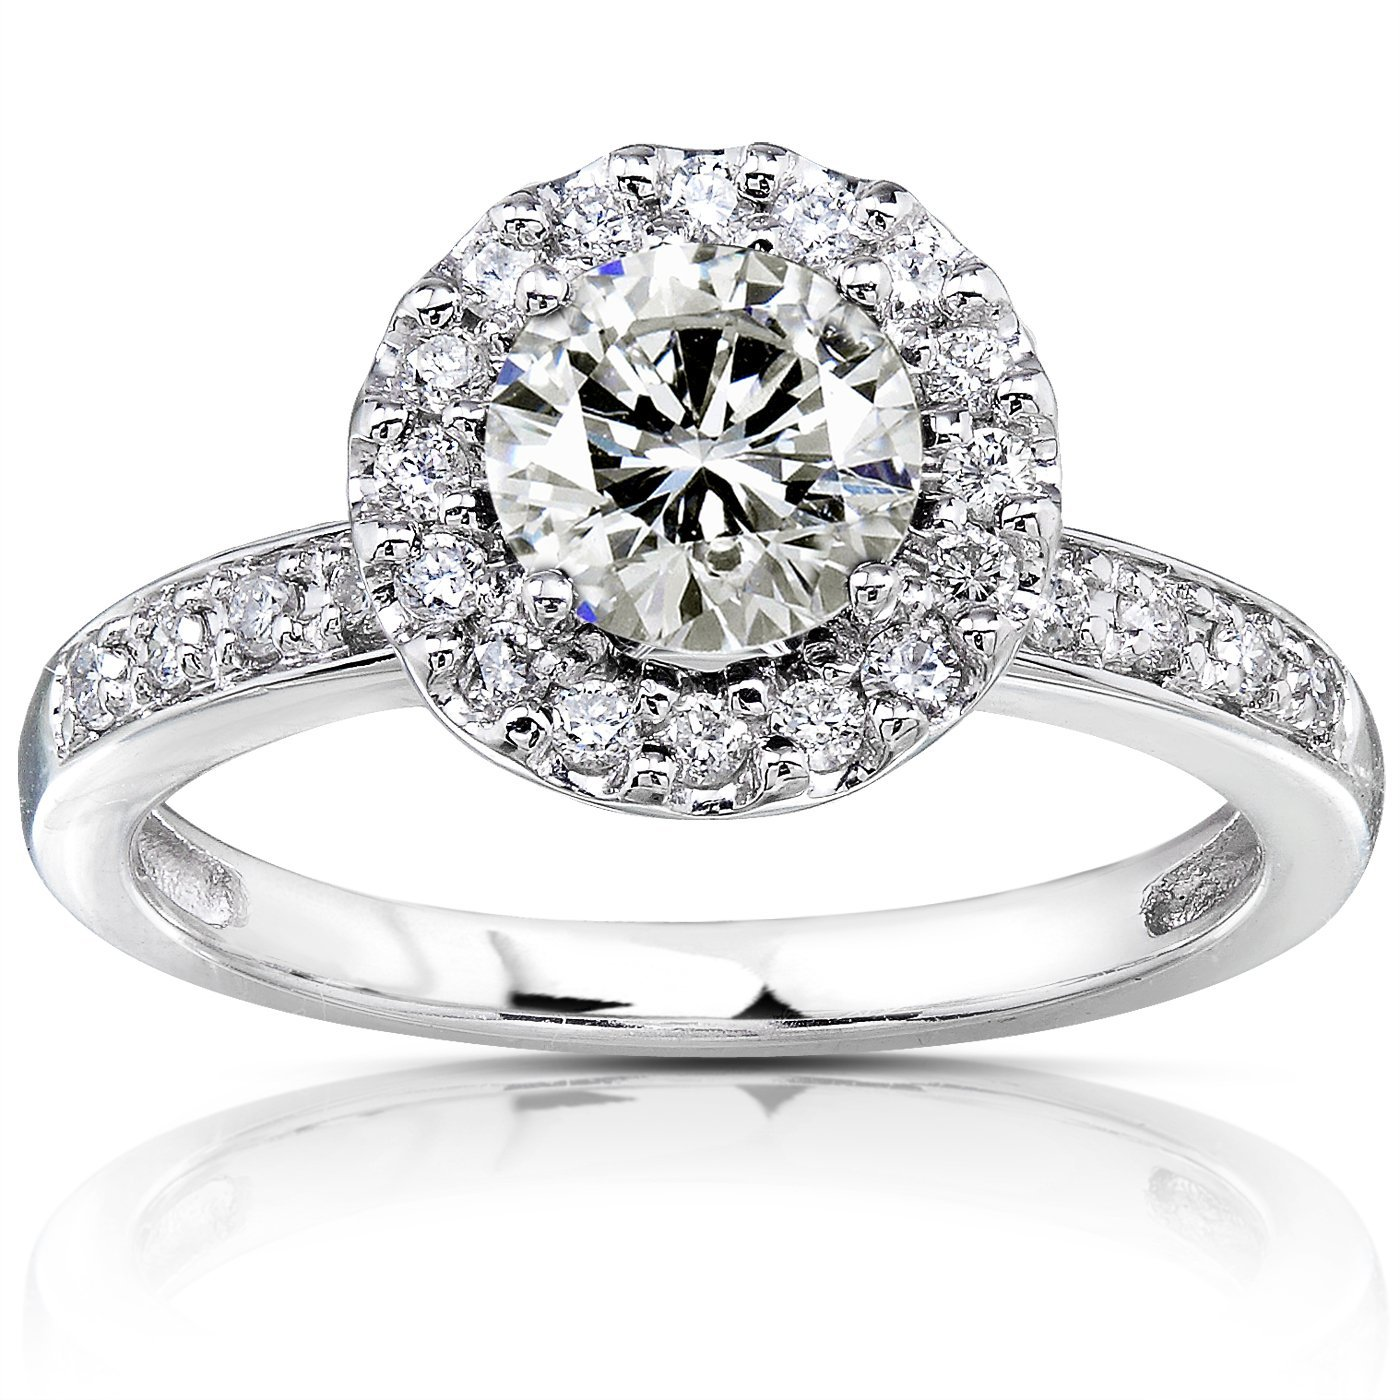 GoldRoundPaveDiamondEngagementRing  Top 5 Cash for Diamonds